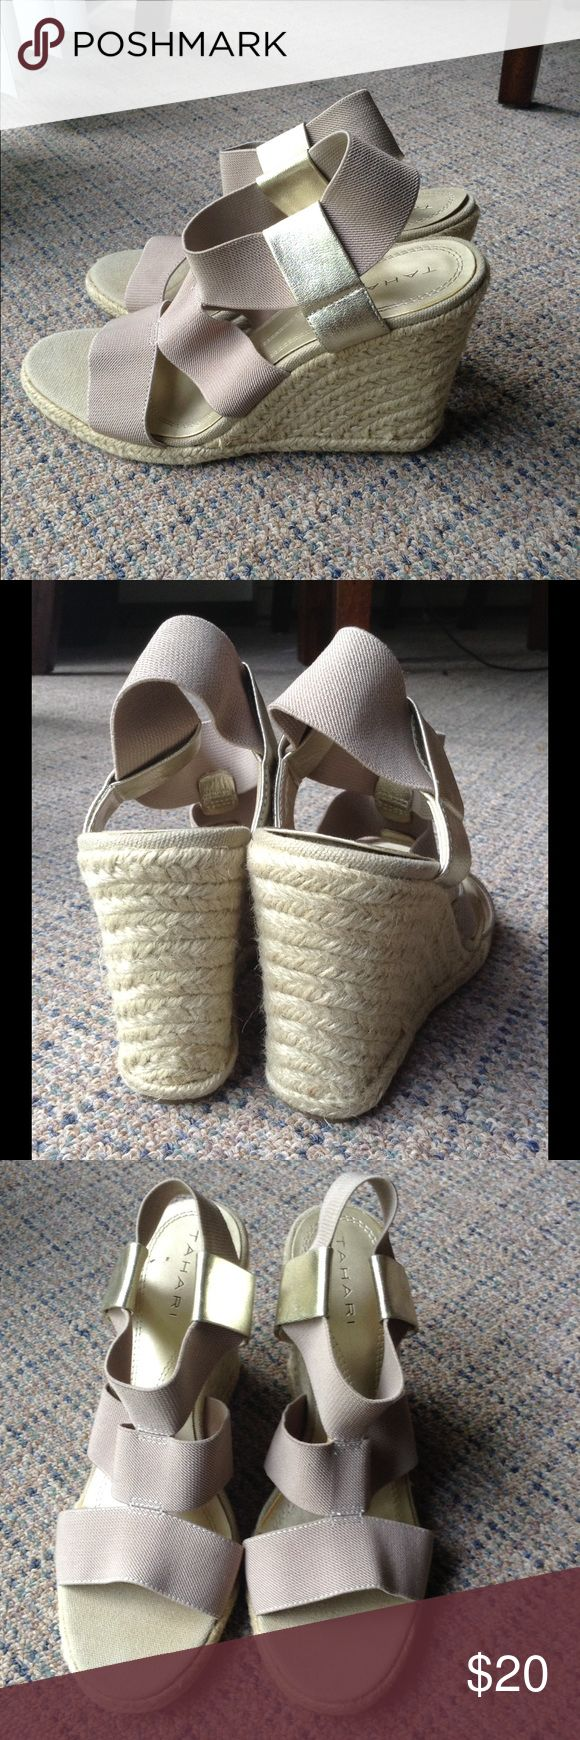 Tahari nude and gold espadrilles Worn once. In excellent condition. Like new. No flaws. Very comfortable Tahari Shoes Espadrilles